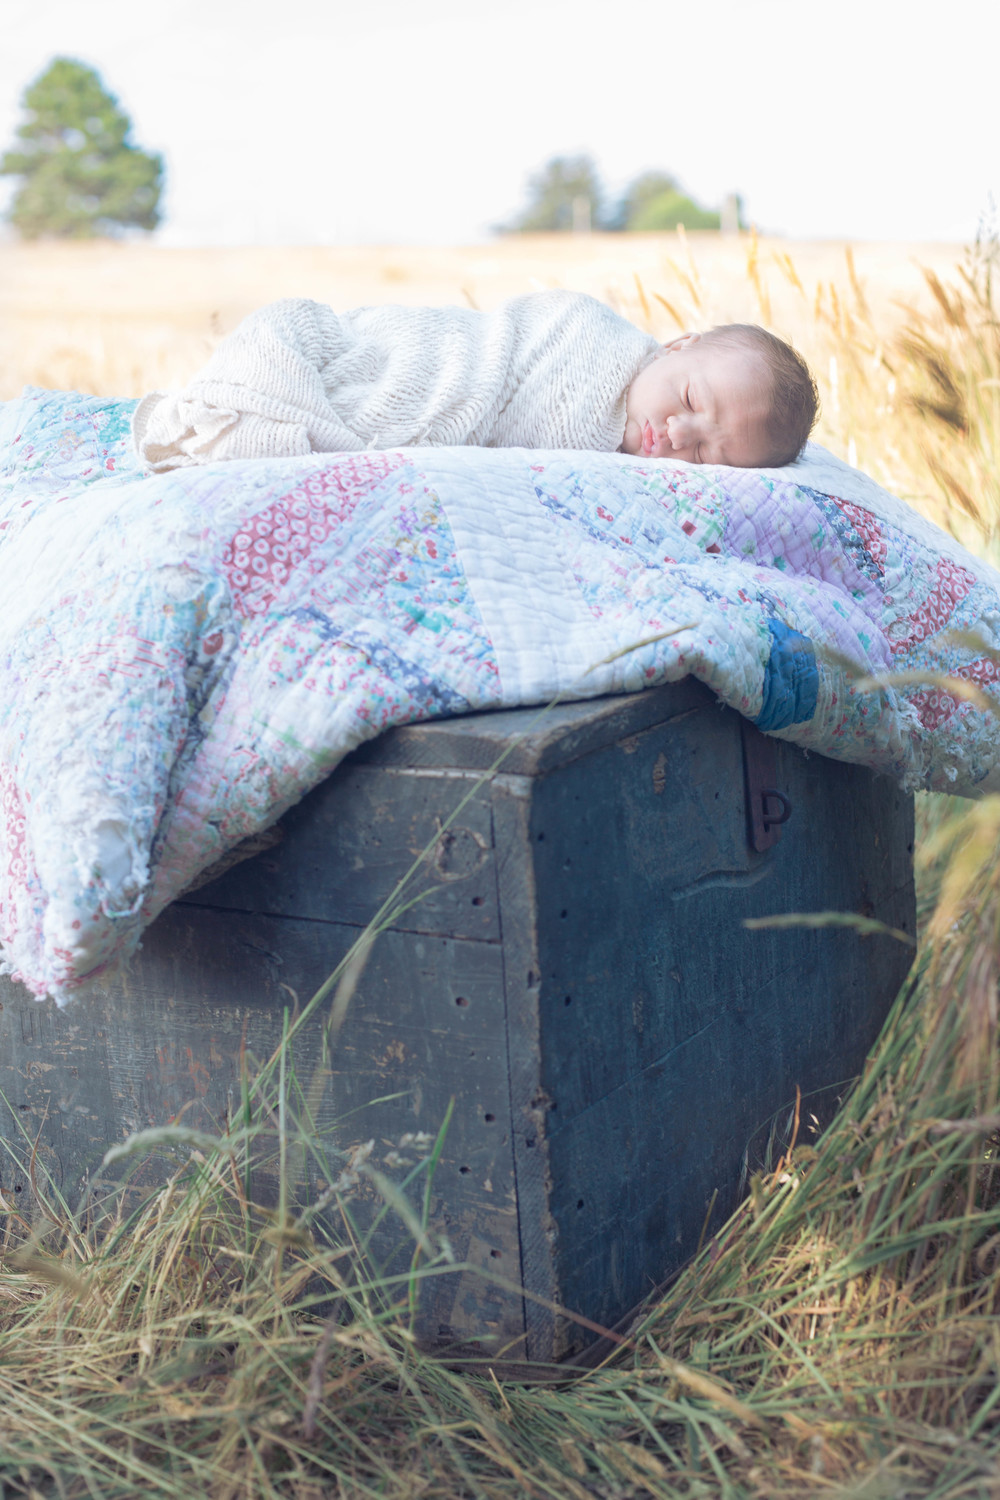 Newborn-photoraphy-baby-photographer-Lubbock-Texas.jpg